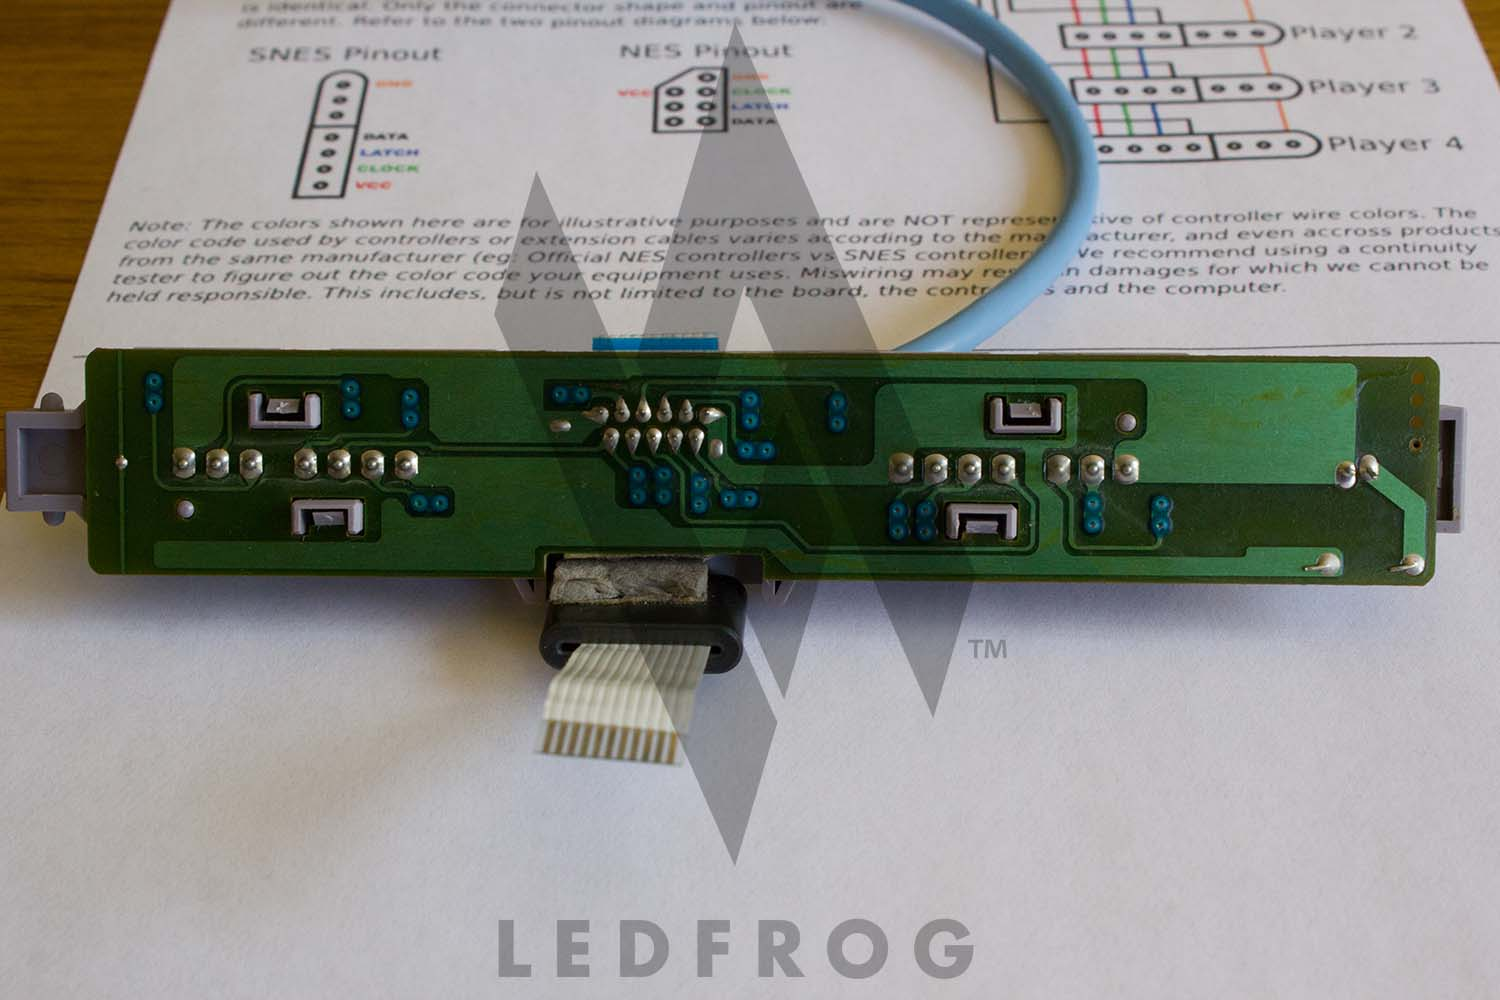 www ledfrog com/wp-content/gallery/snes-project-2/